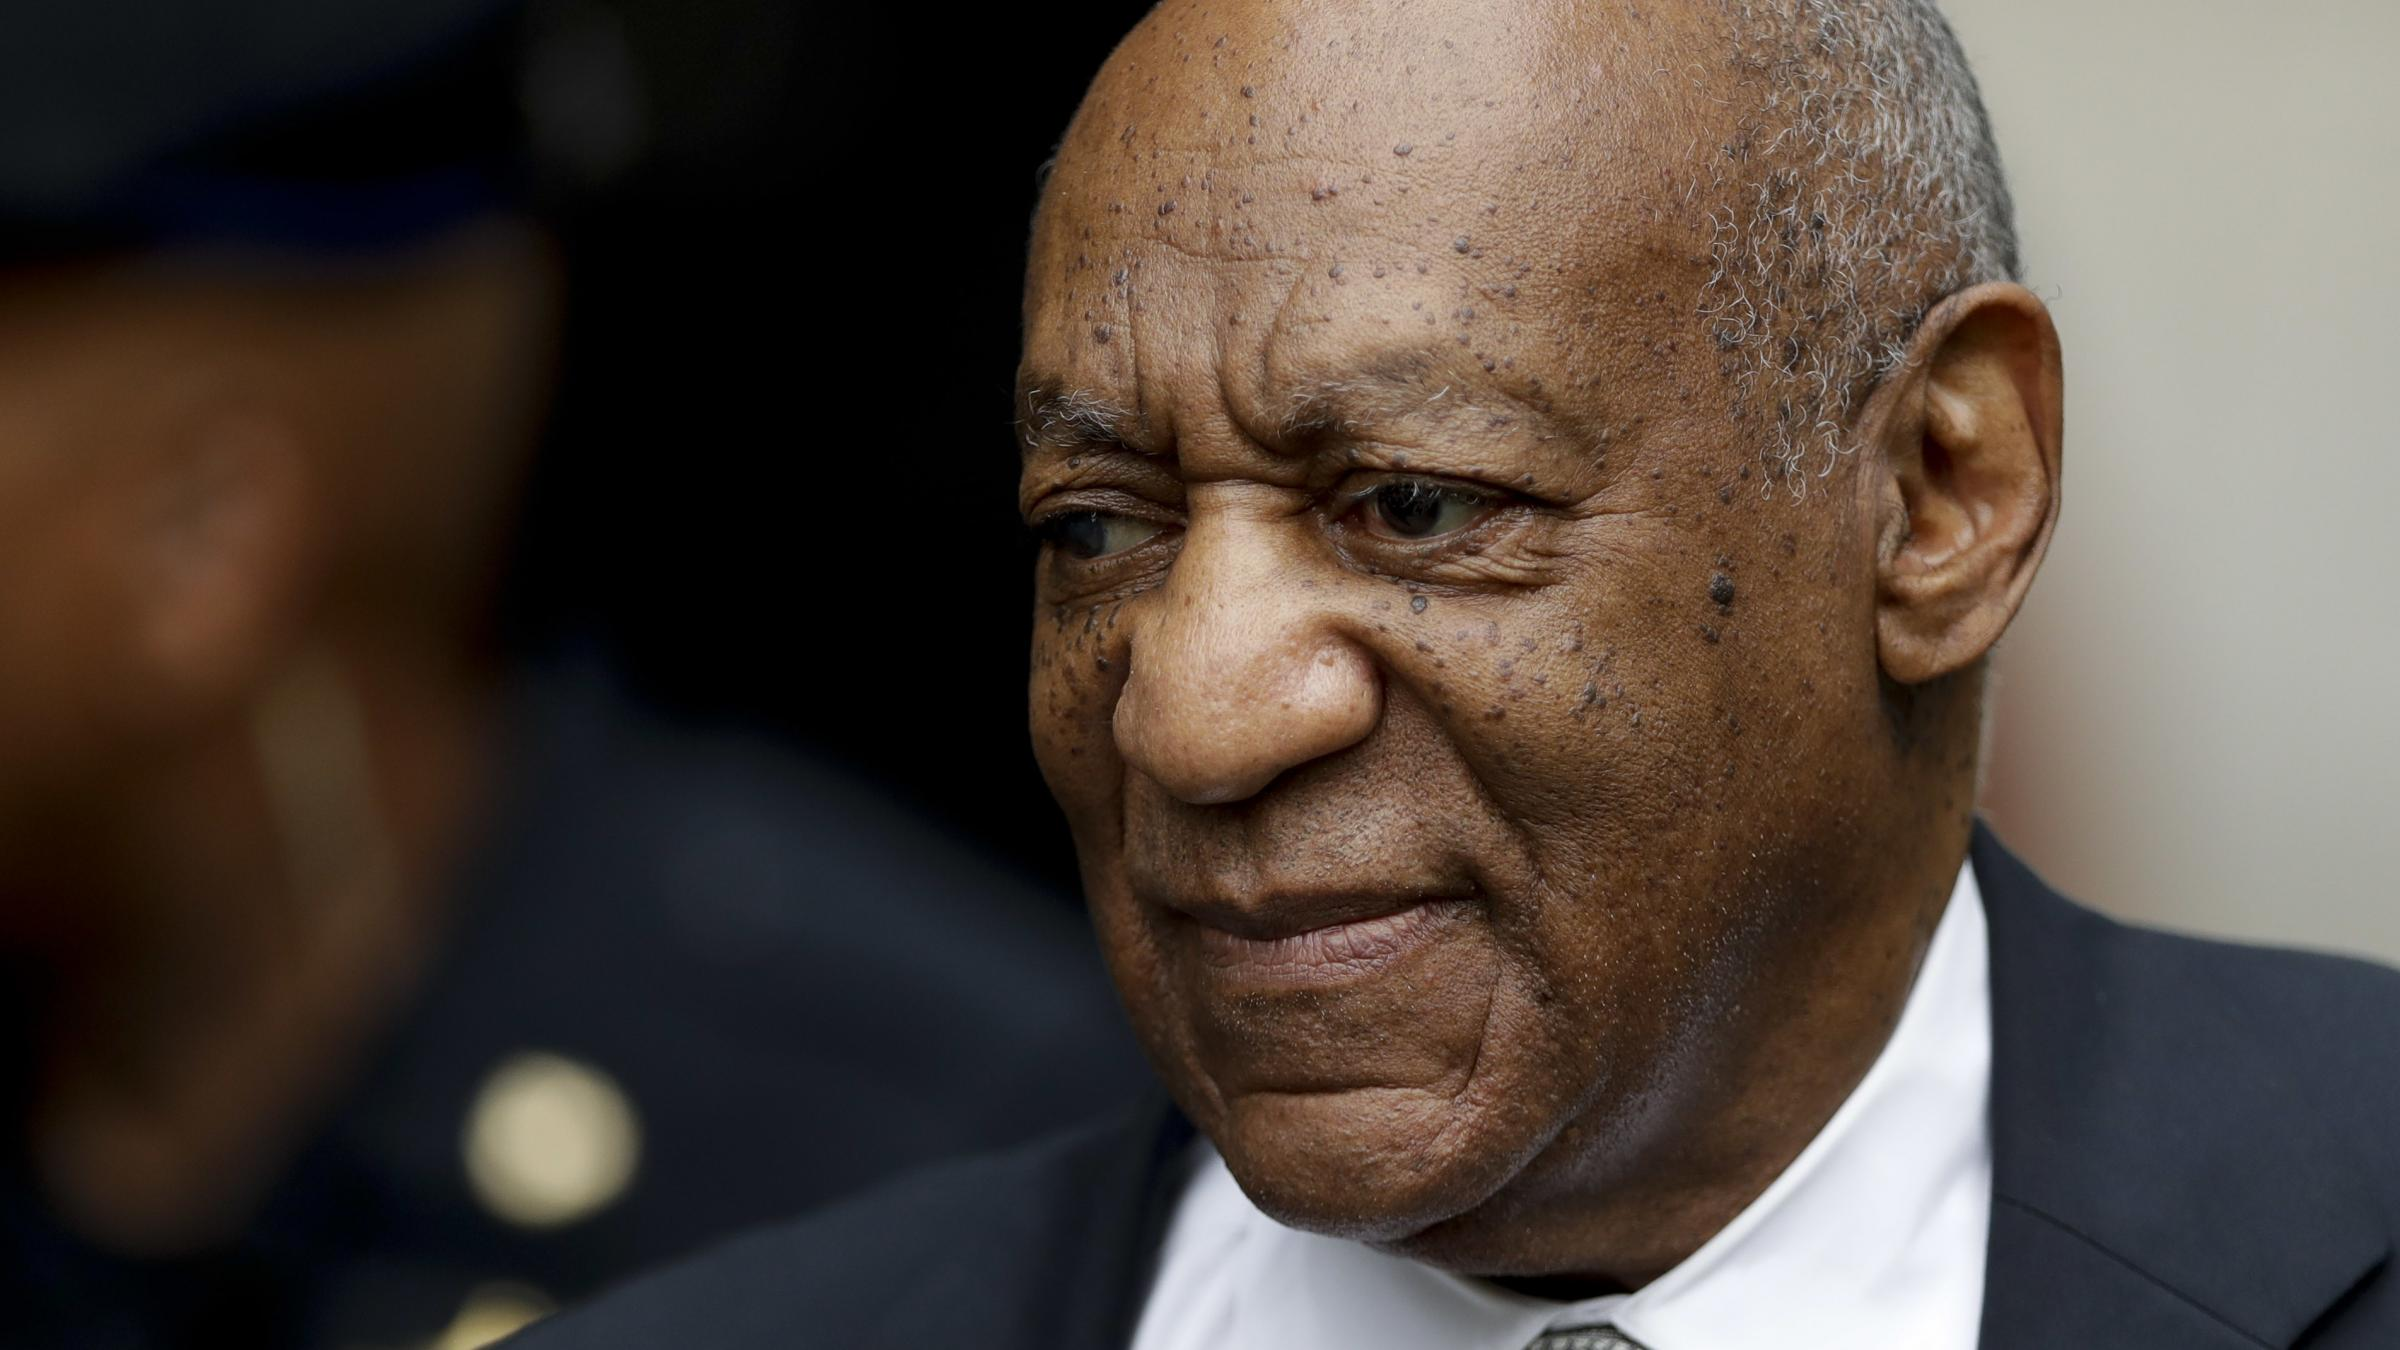 Cosby accuser thanks prosecutors after mistrial